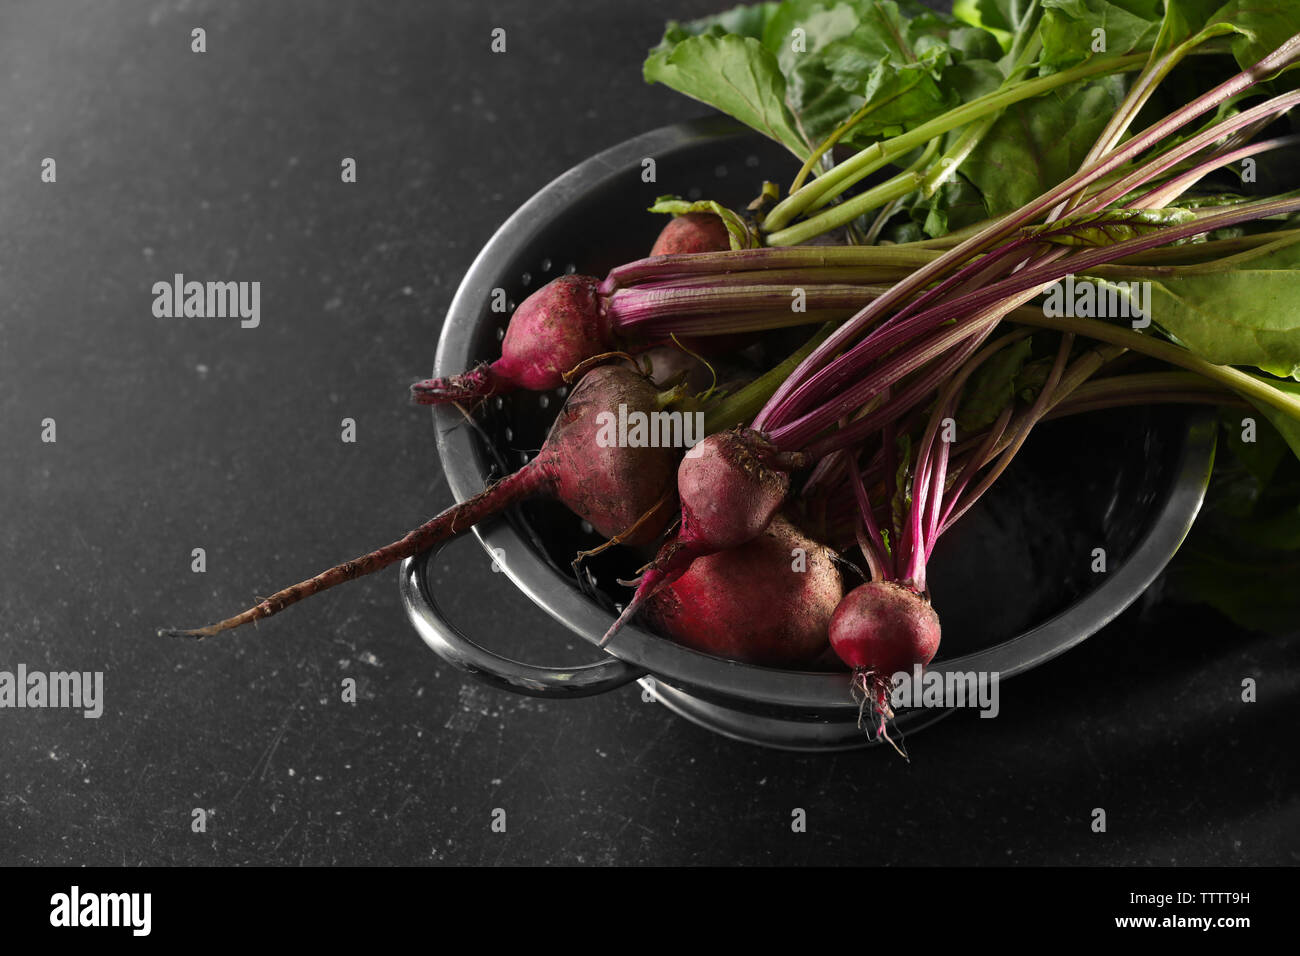 Bunch of fresh beets in a colander on black background Stock Photo